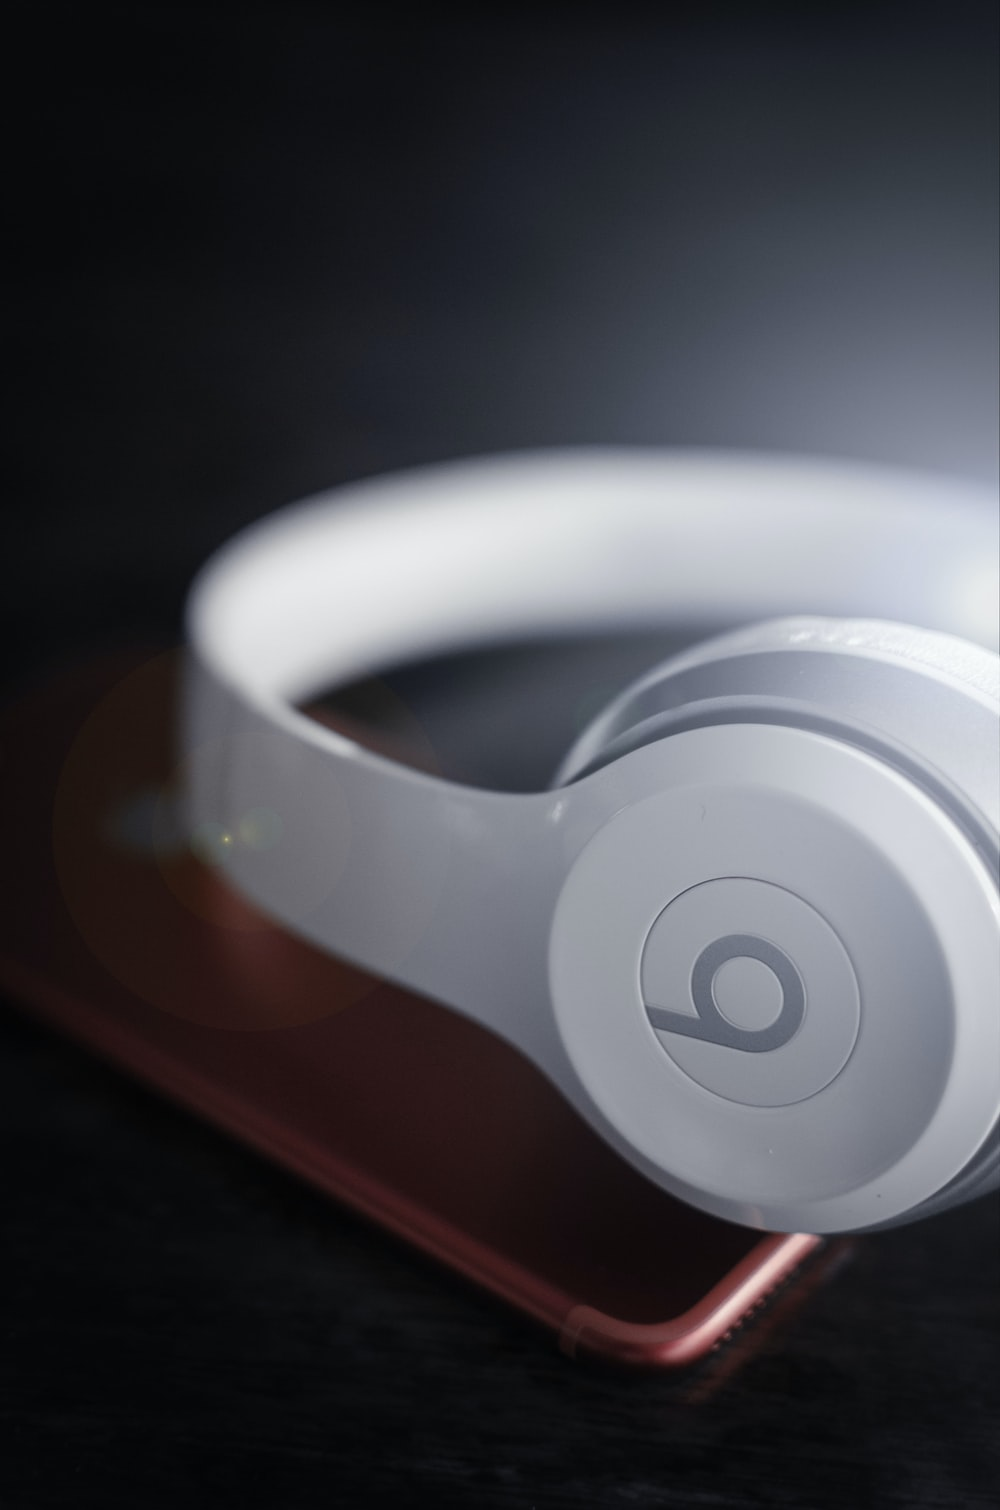 closeup photo of white Beats by Dr. Dre wireless headphones